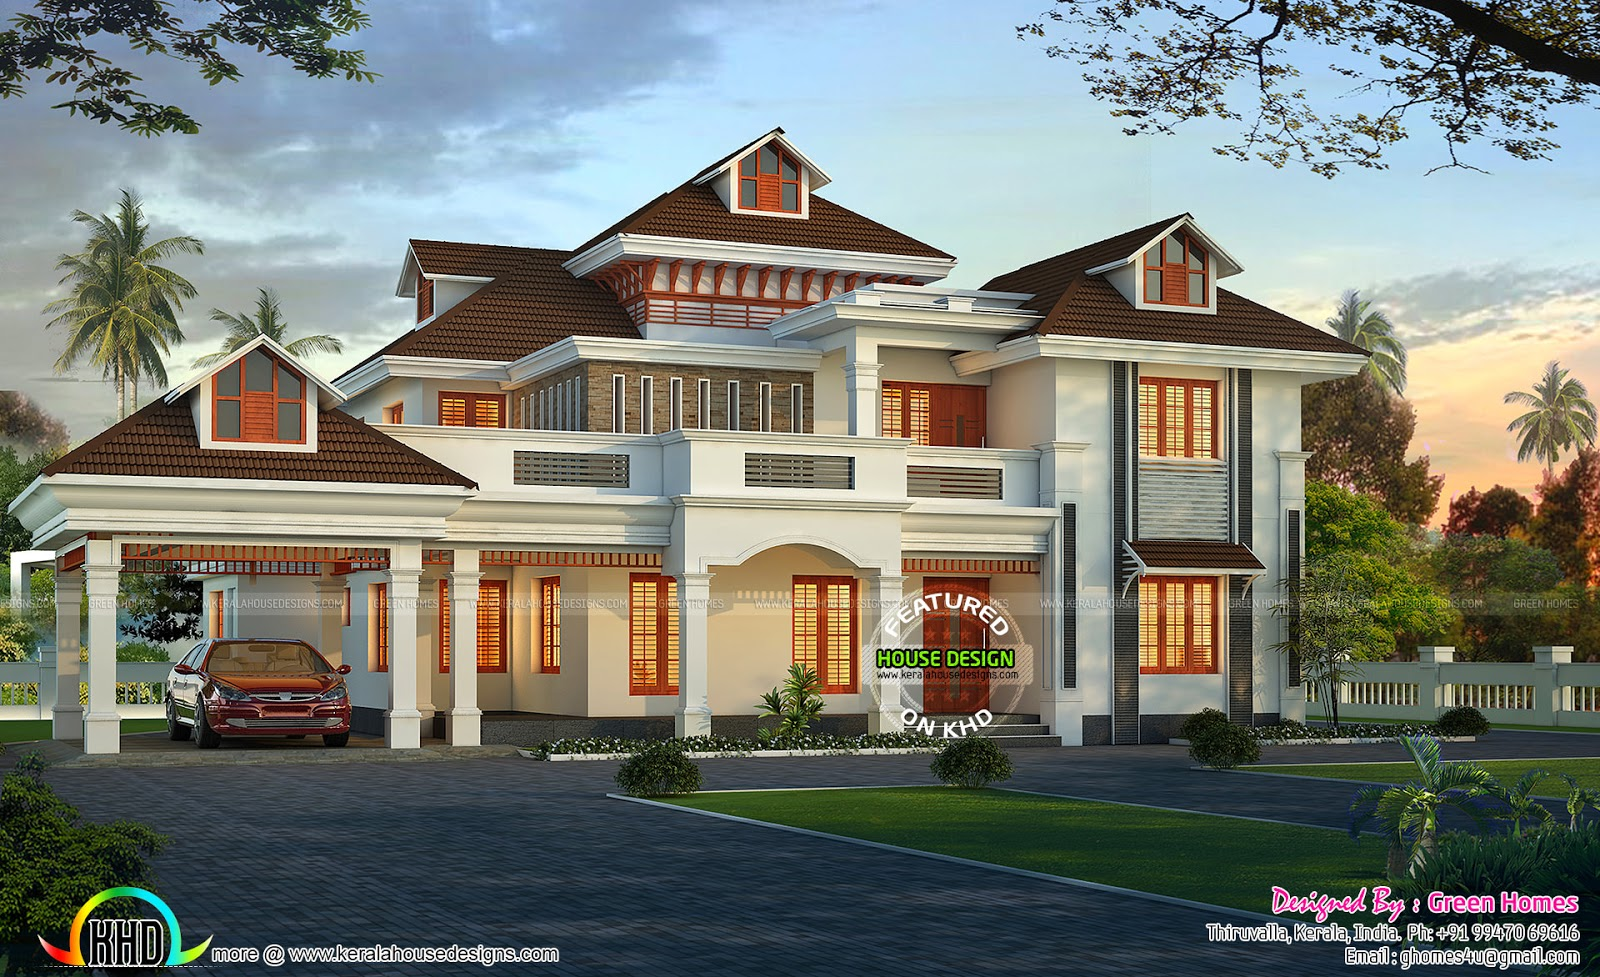 sq ft house elegant kerala home design floor sq ft house provision stair future expansion home